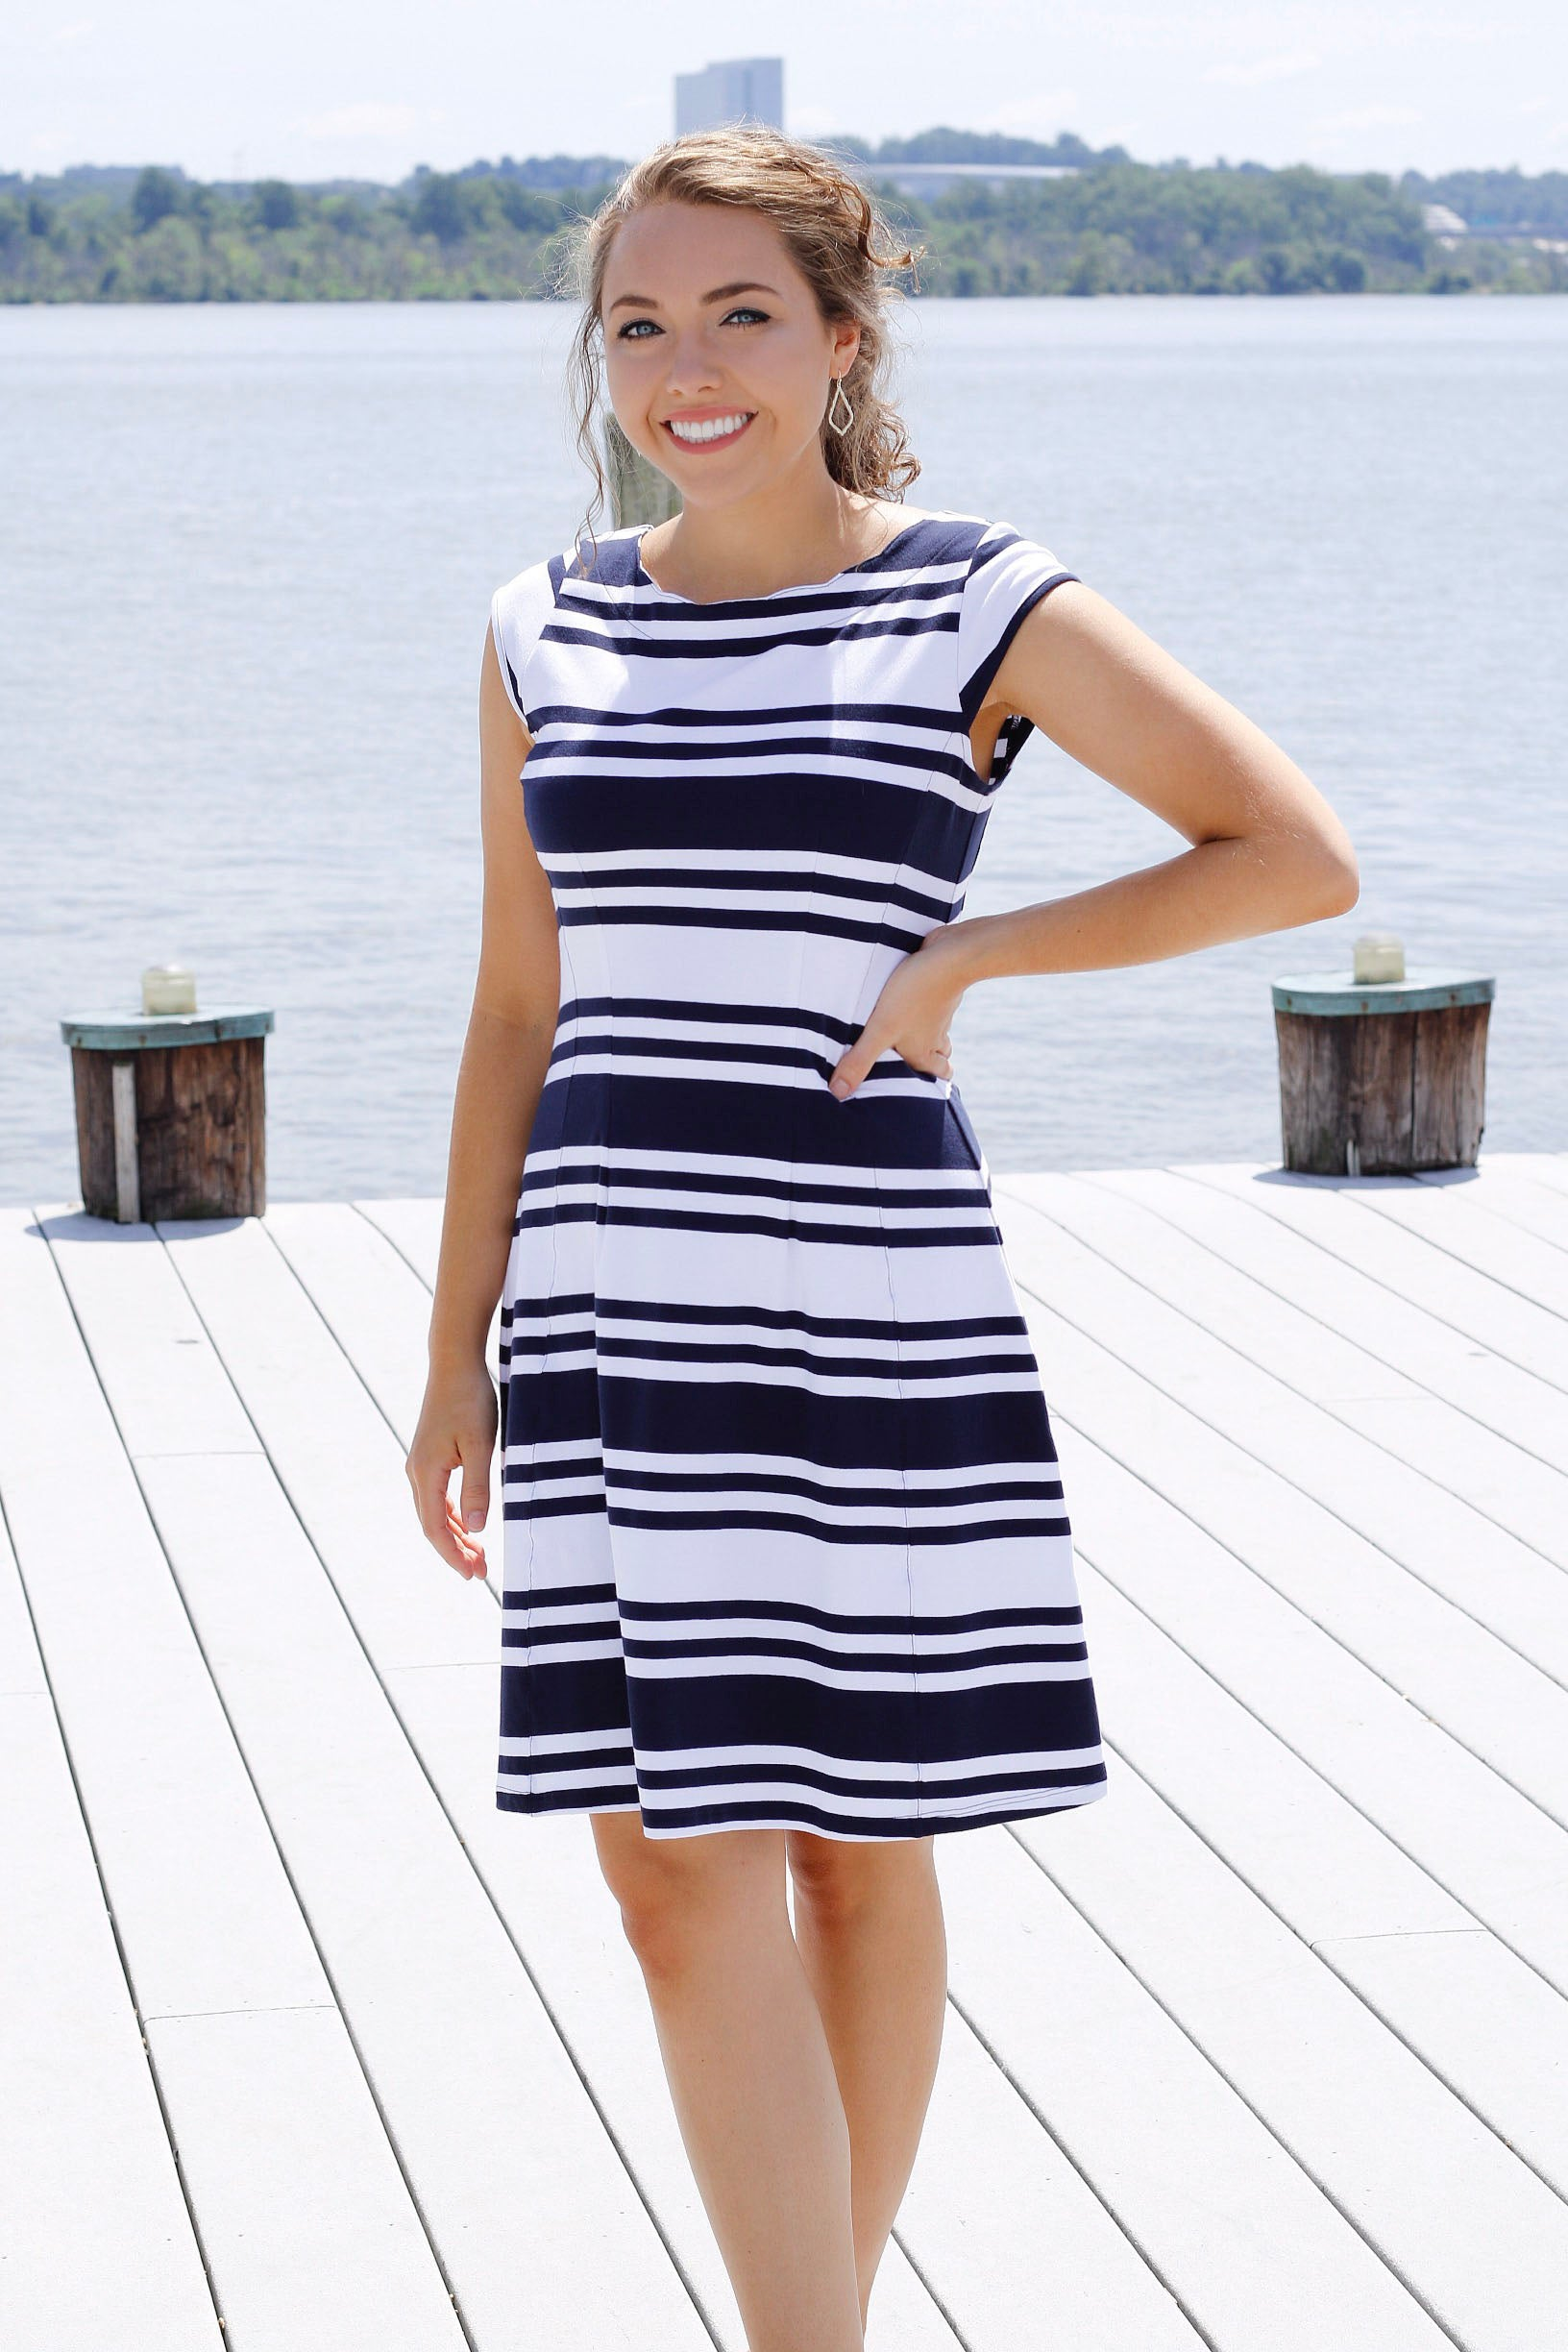 Duffield Lane Hackley Dress - Navy/White Stripe